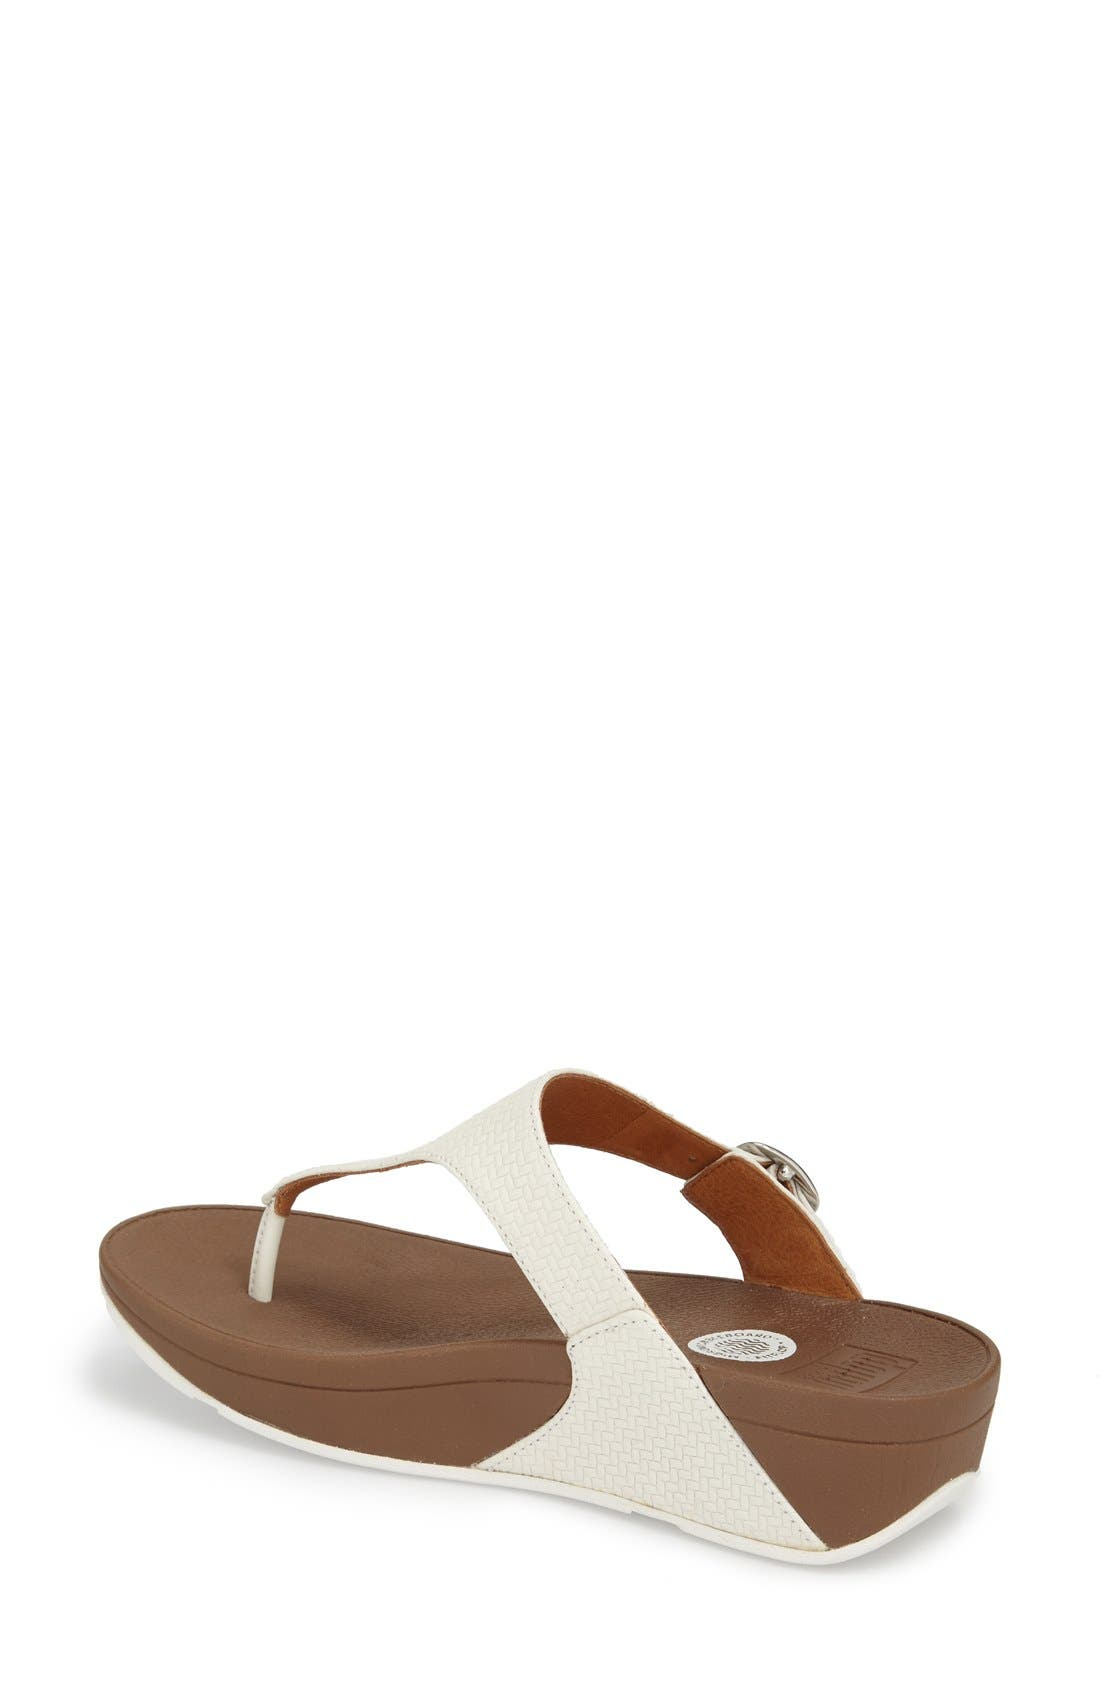 The Skinny Flip Flop,                             Alternate thumbnail 2, color,                             Urban White Leather